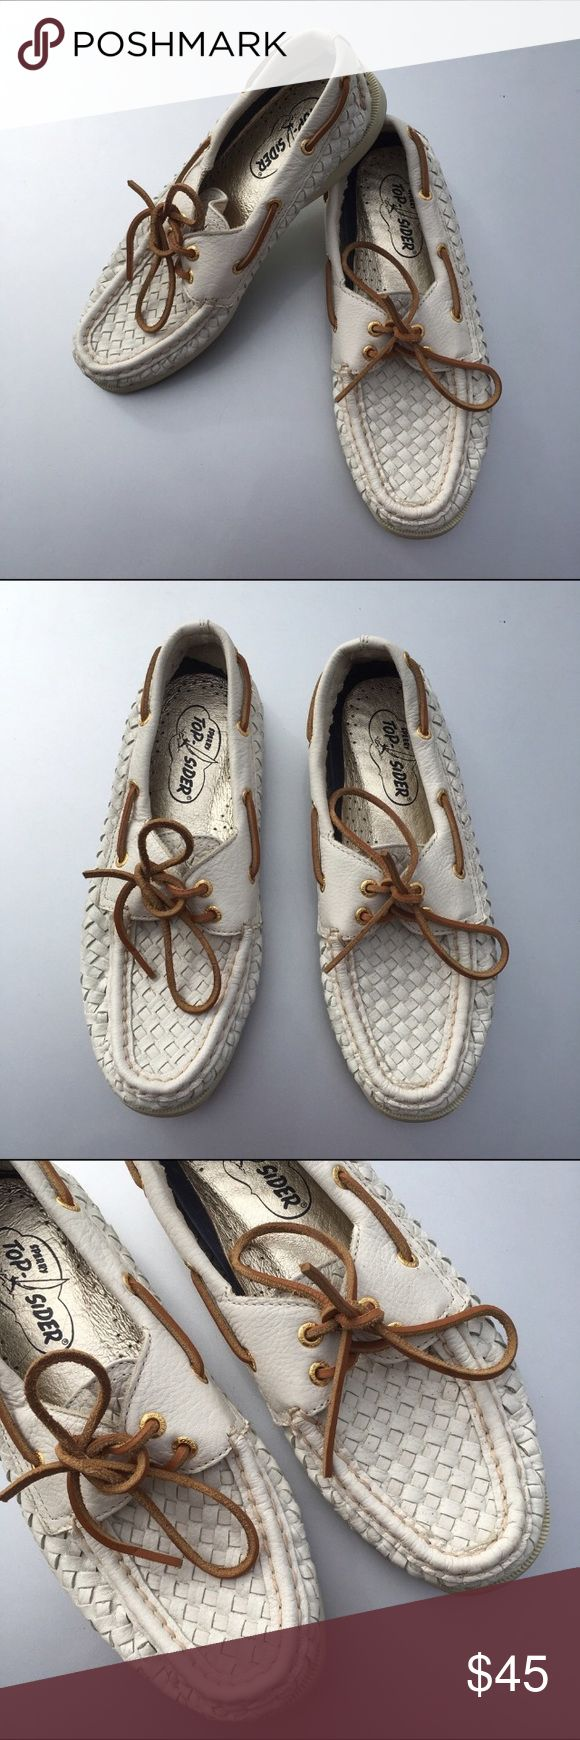 Sperry TopSider basket weave Boat Shoes size 7.5 Adorable Sperry TopSiders! Size 7.5. White/off-white Colour and have a basket weave pattern! Overall good used condition!! Show some wear. Some dirt on sides and bottoms. Backs have been stepped on a little, and the have little folds/creases. Sperry Shoes Flats & Loafers